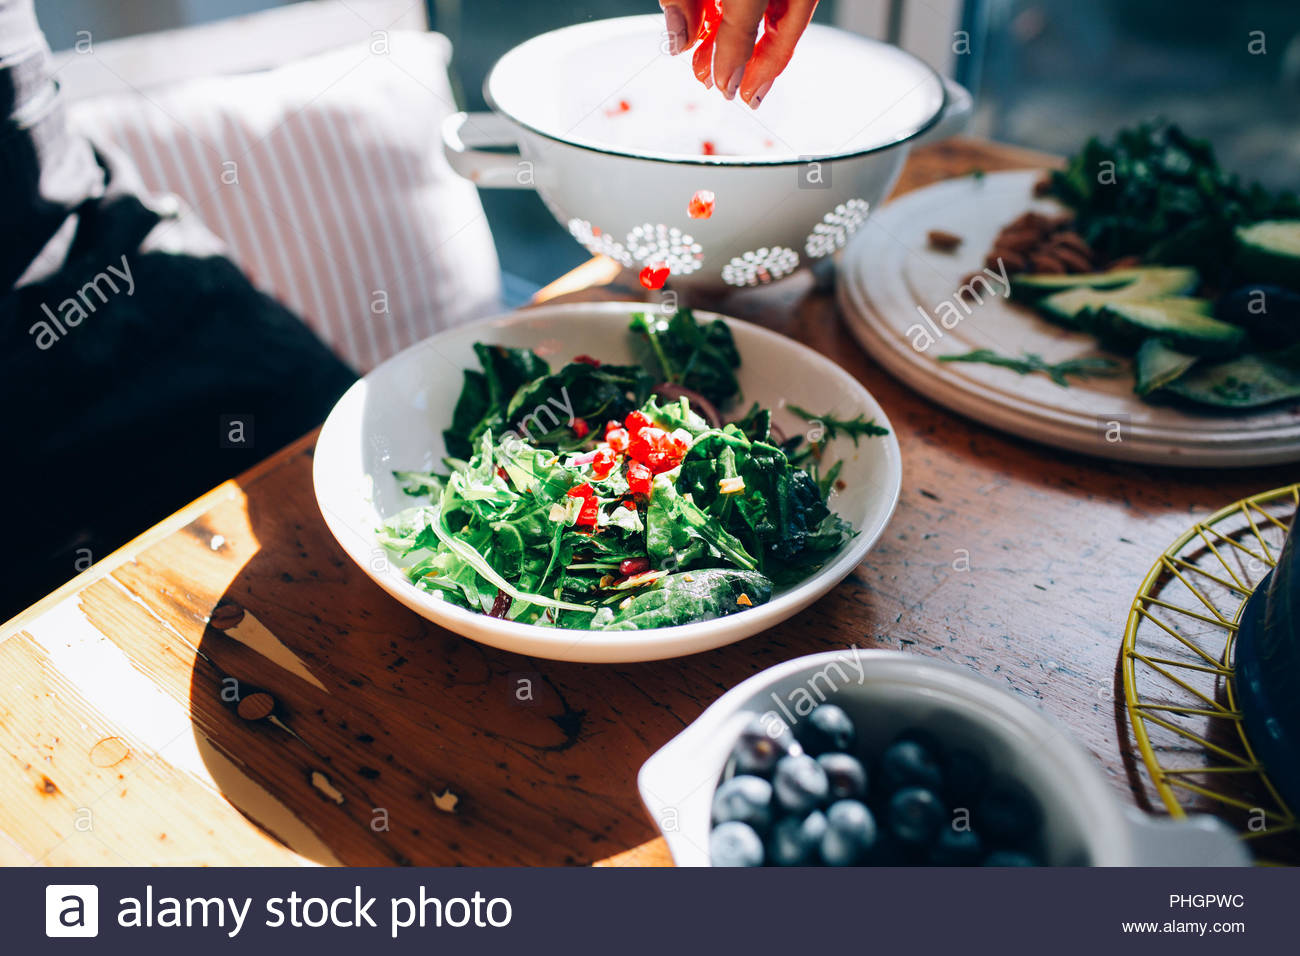 Hand of woman sprinkling pomegranate seeds on salad - Stock Image